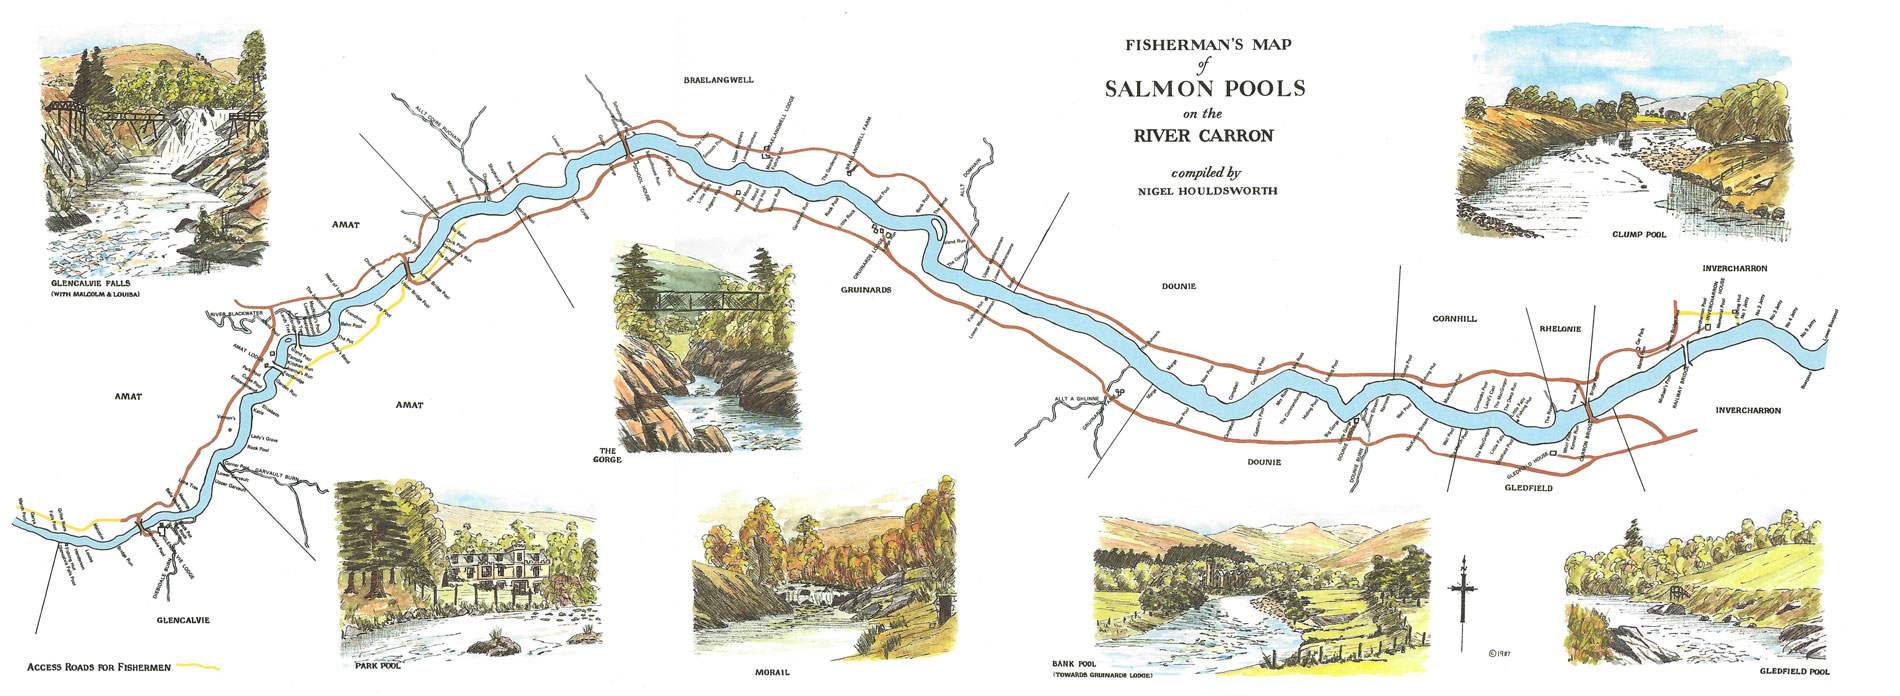 Map of River Carron